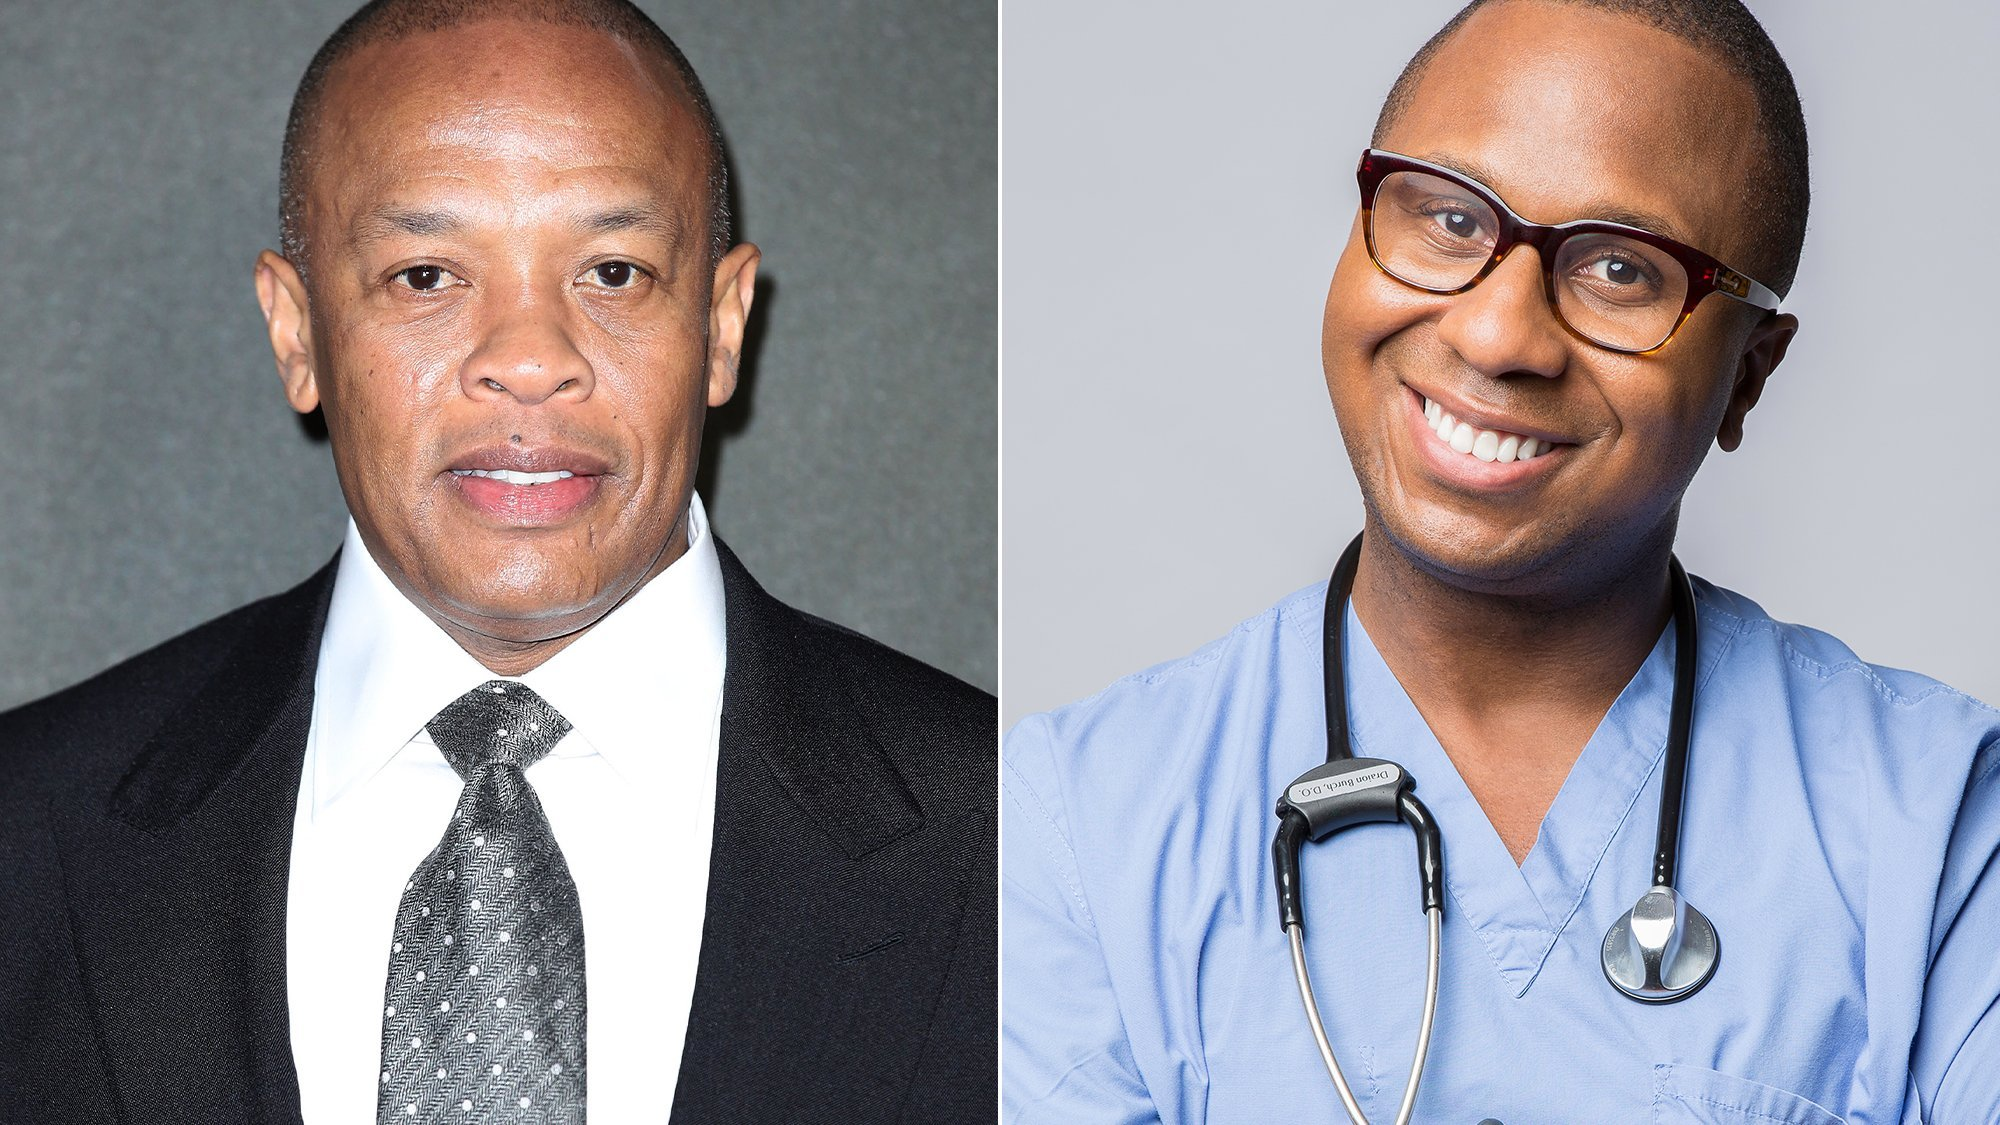 Rapper Dr. Dre, left, is seen in a photo from Getty Images, and OB-GYN Dr. Drai is seen in a photo from his website. (Credit: CNN)